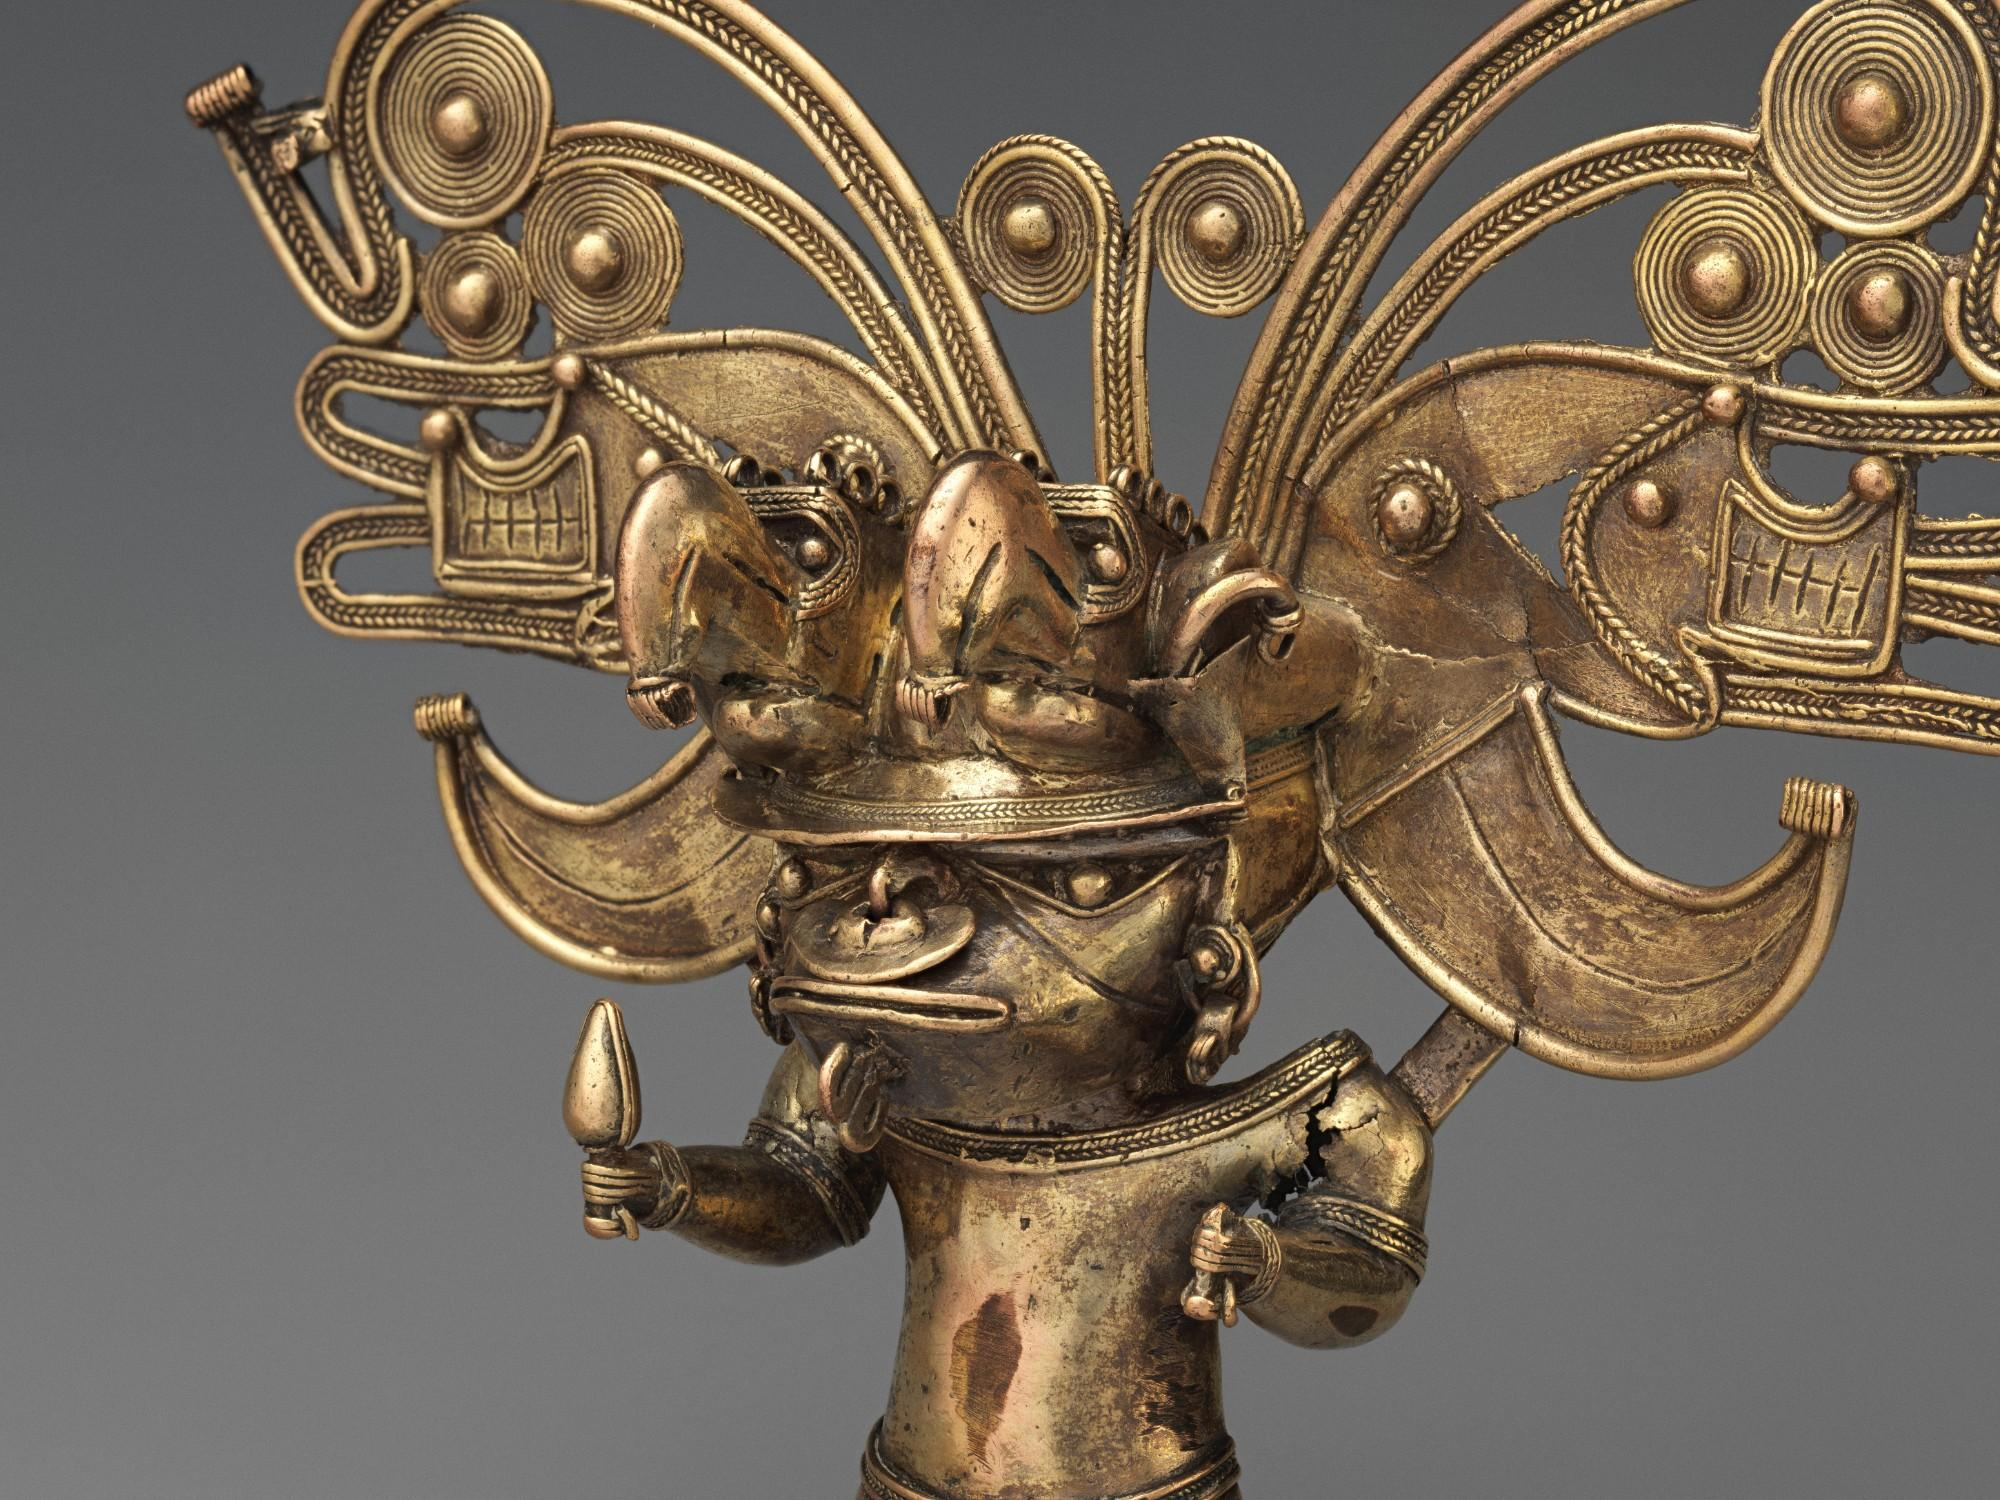 Figure pendant, Tairona, Colombia, 10th–16th century. Gold